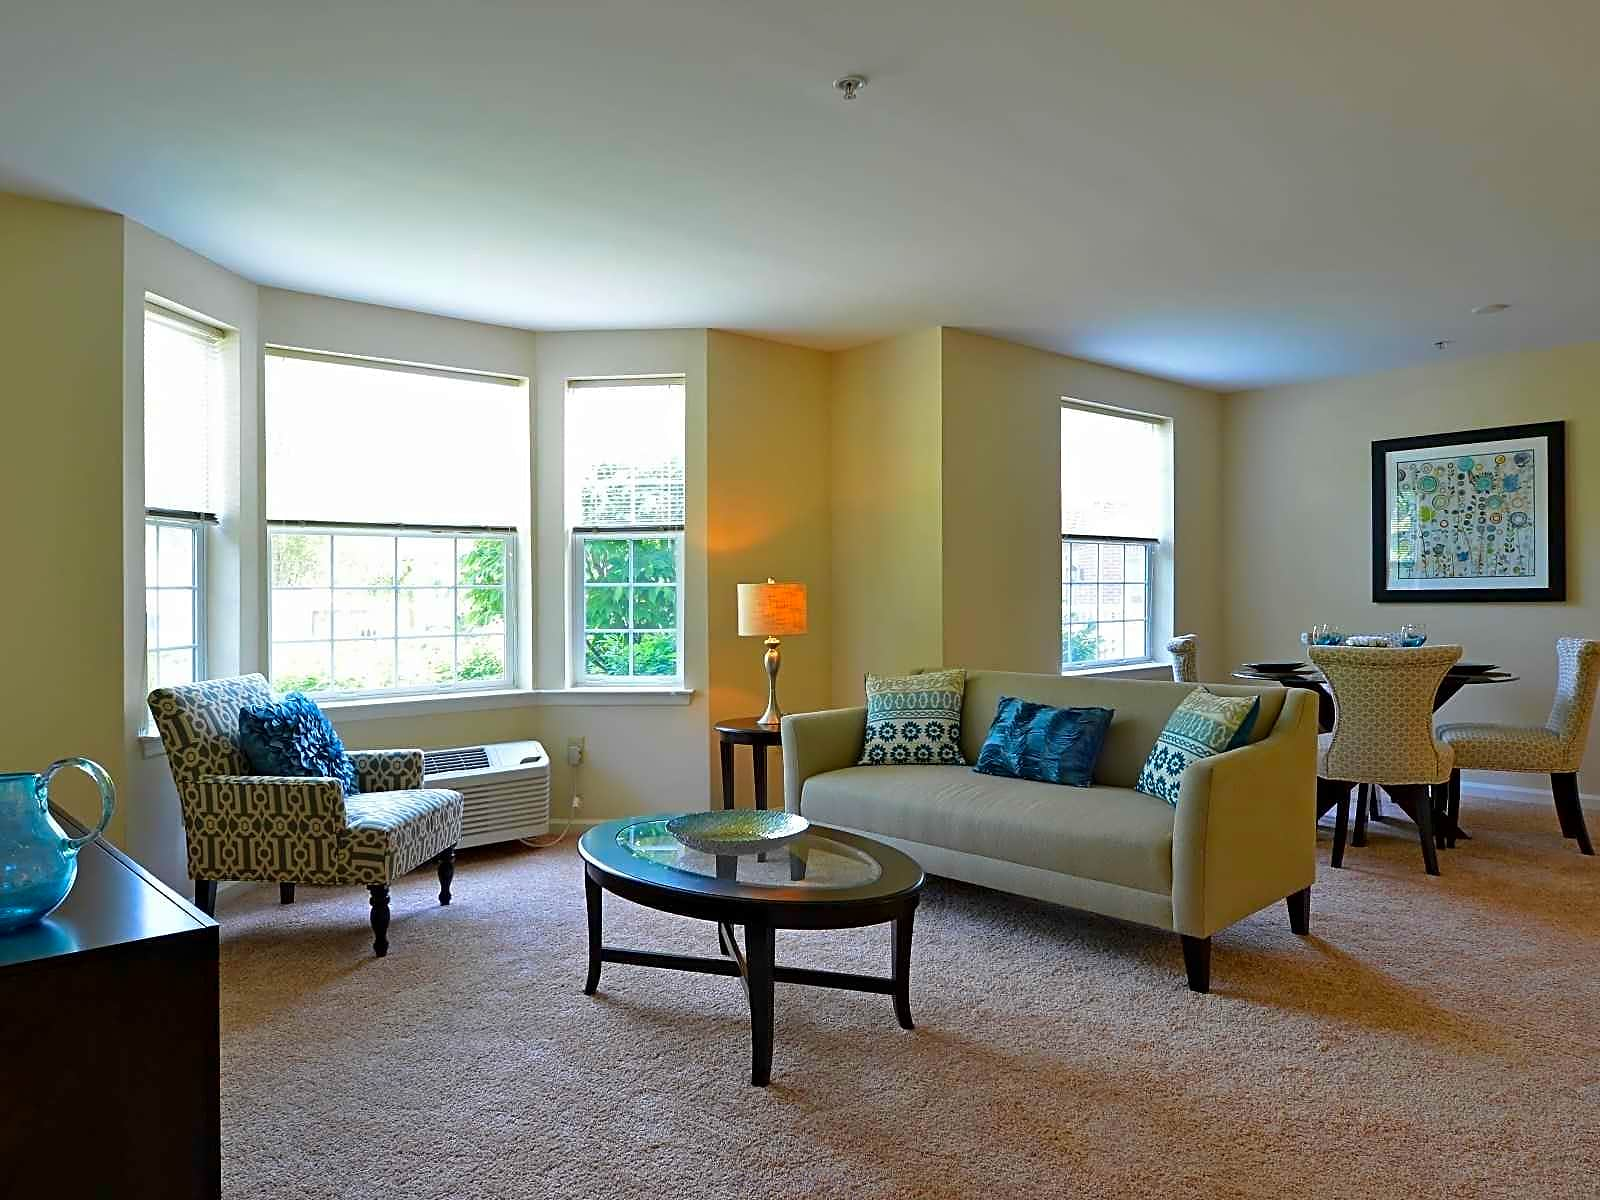 Apartments Near Centenary Carriage Club At Mt. Arlington for Centenary College Students in Hackettstown, NJ